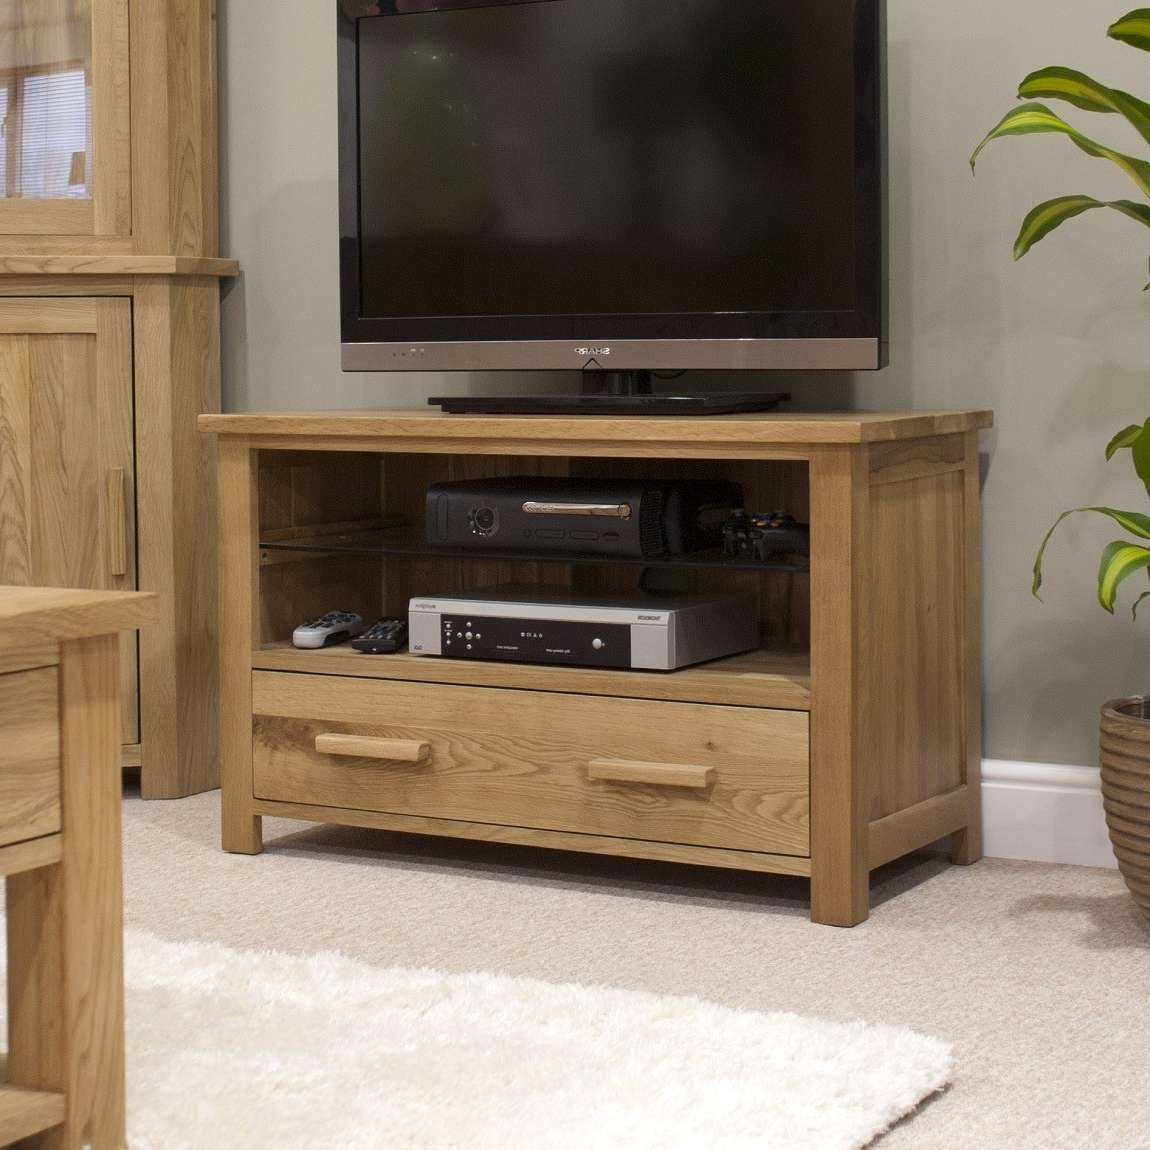 Opus Solid Oak Tv Cabinet | Oak Furniture Uk With Oak Tv Cabinets (View 9 of 20)